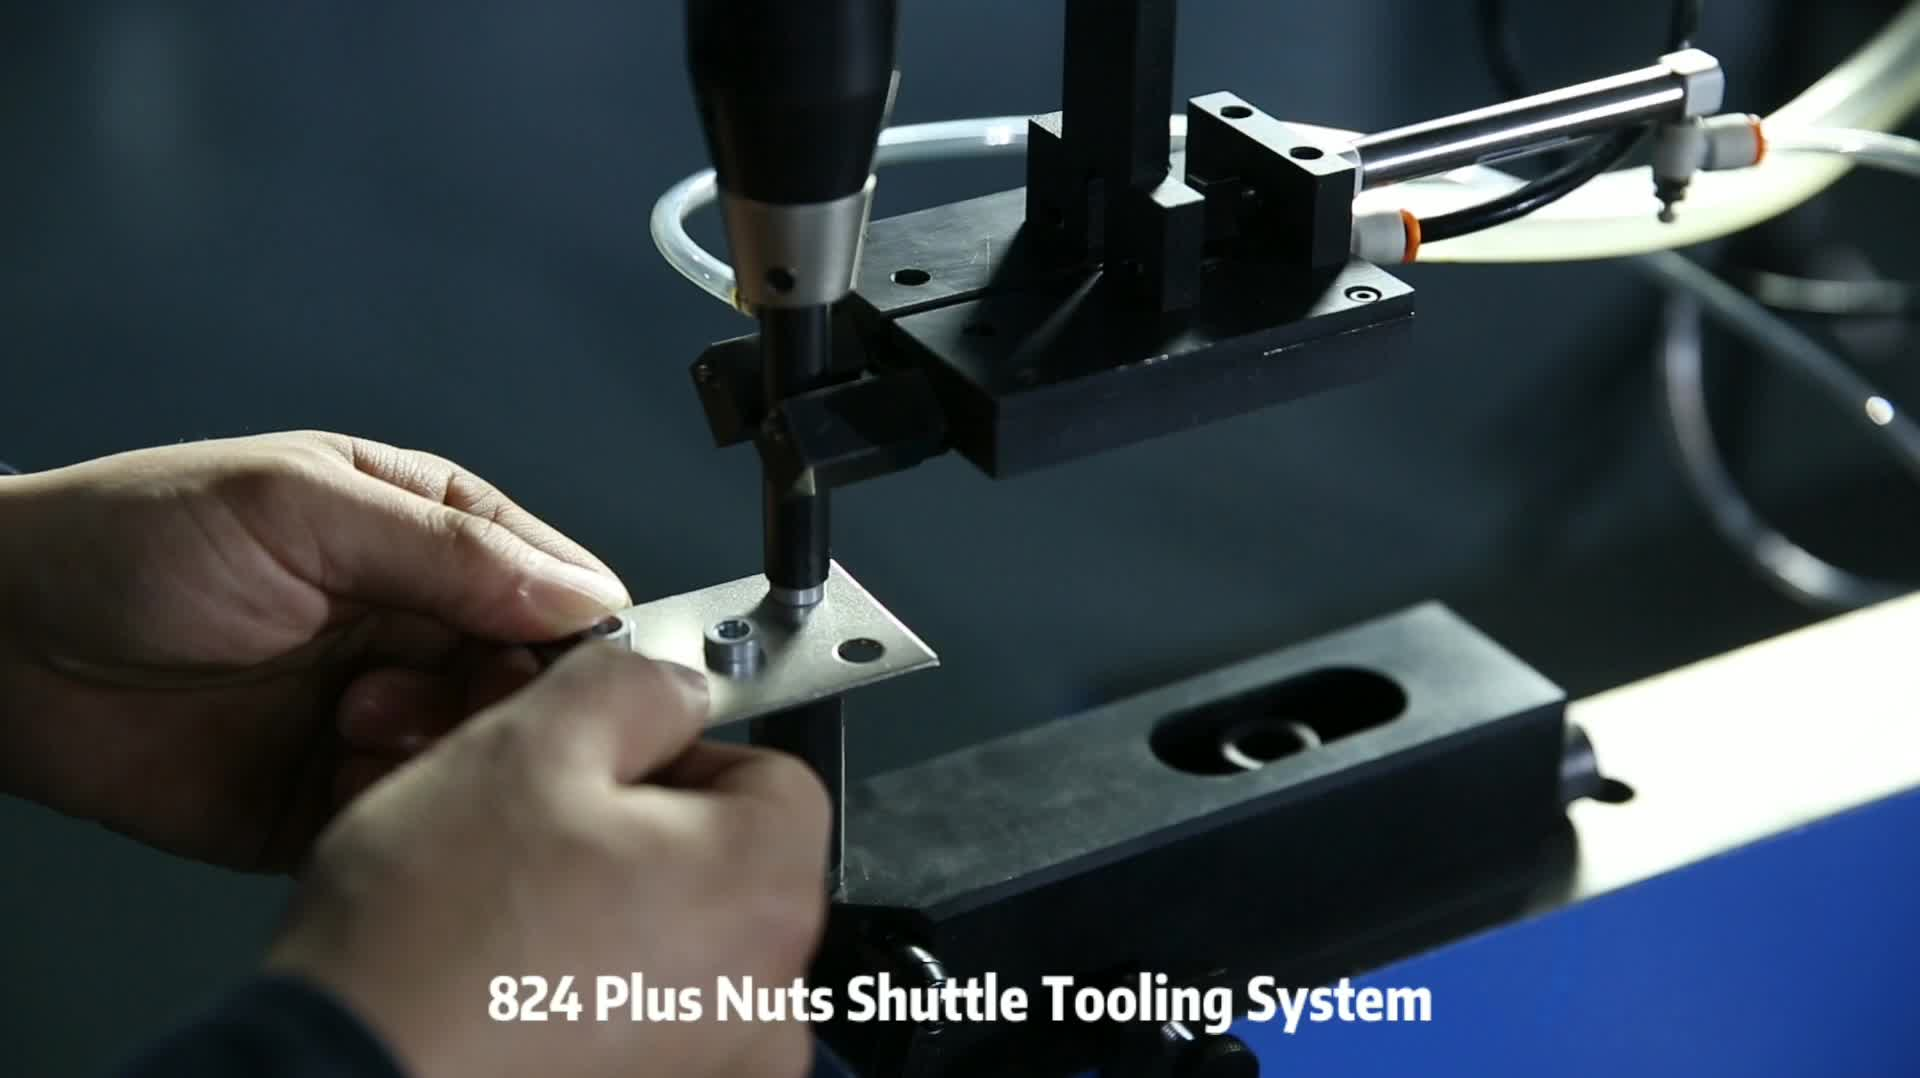 Auto Tooling System For Sheet Metal Screw Mount Machine